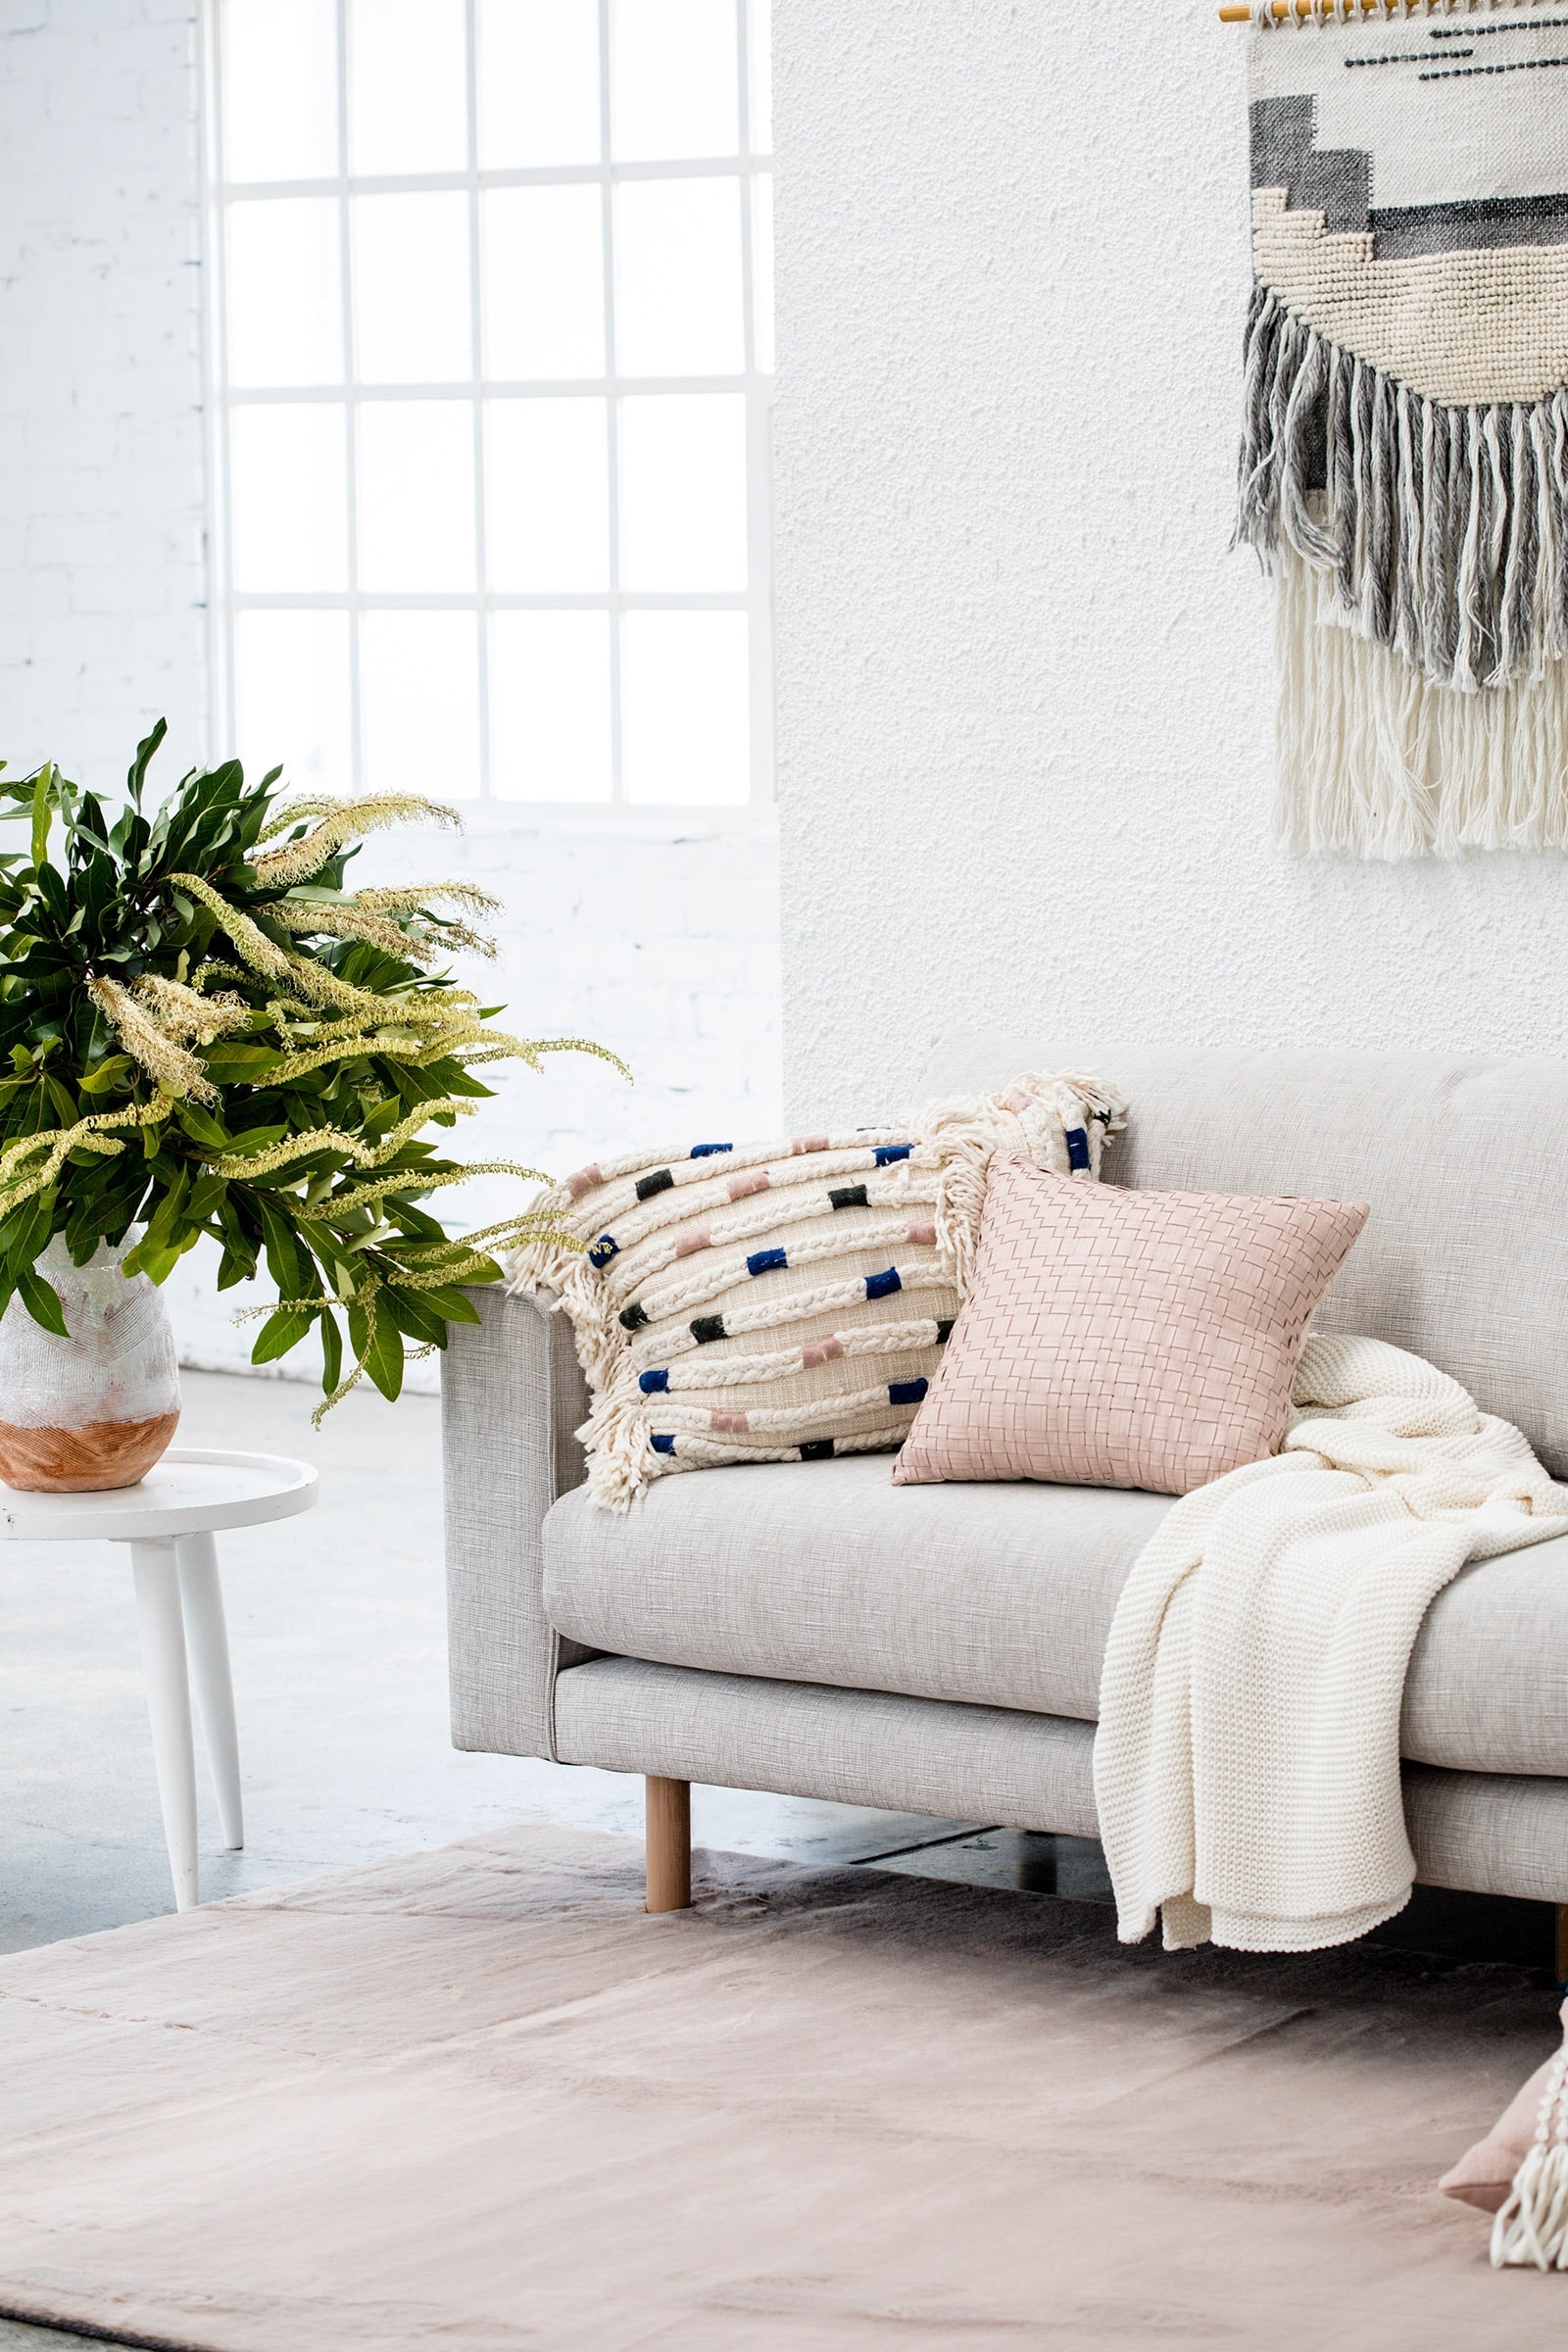 oz design light grey sofa with bohemian cushions and australian natives in vase